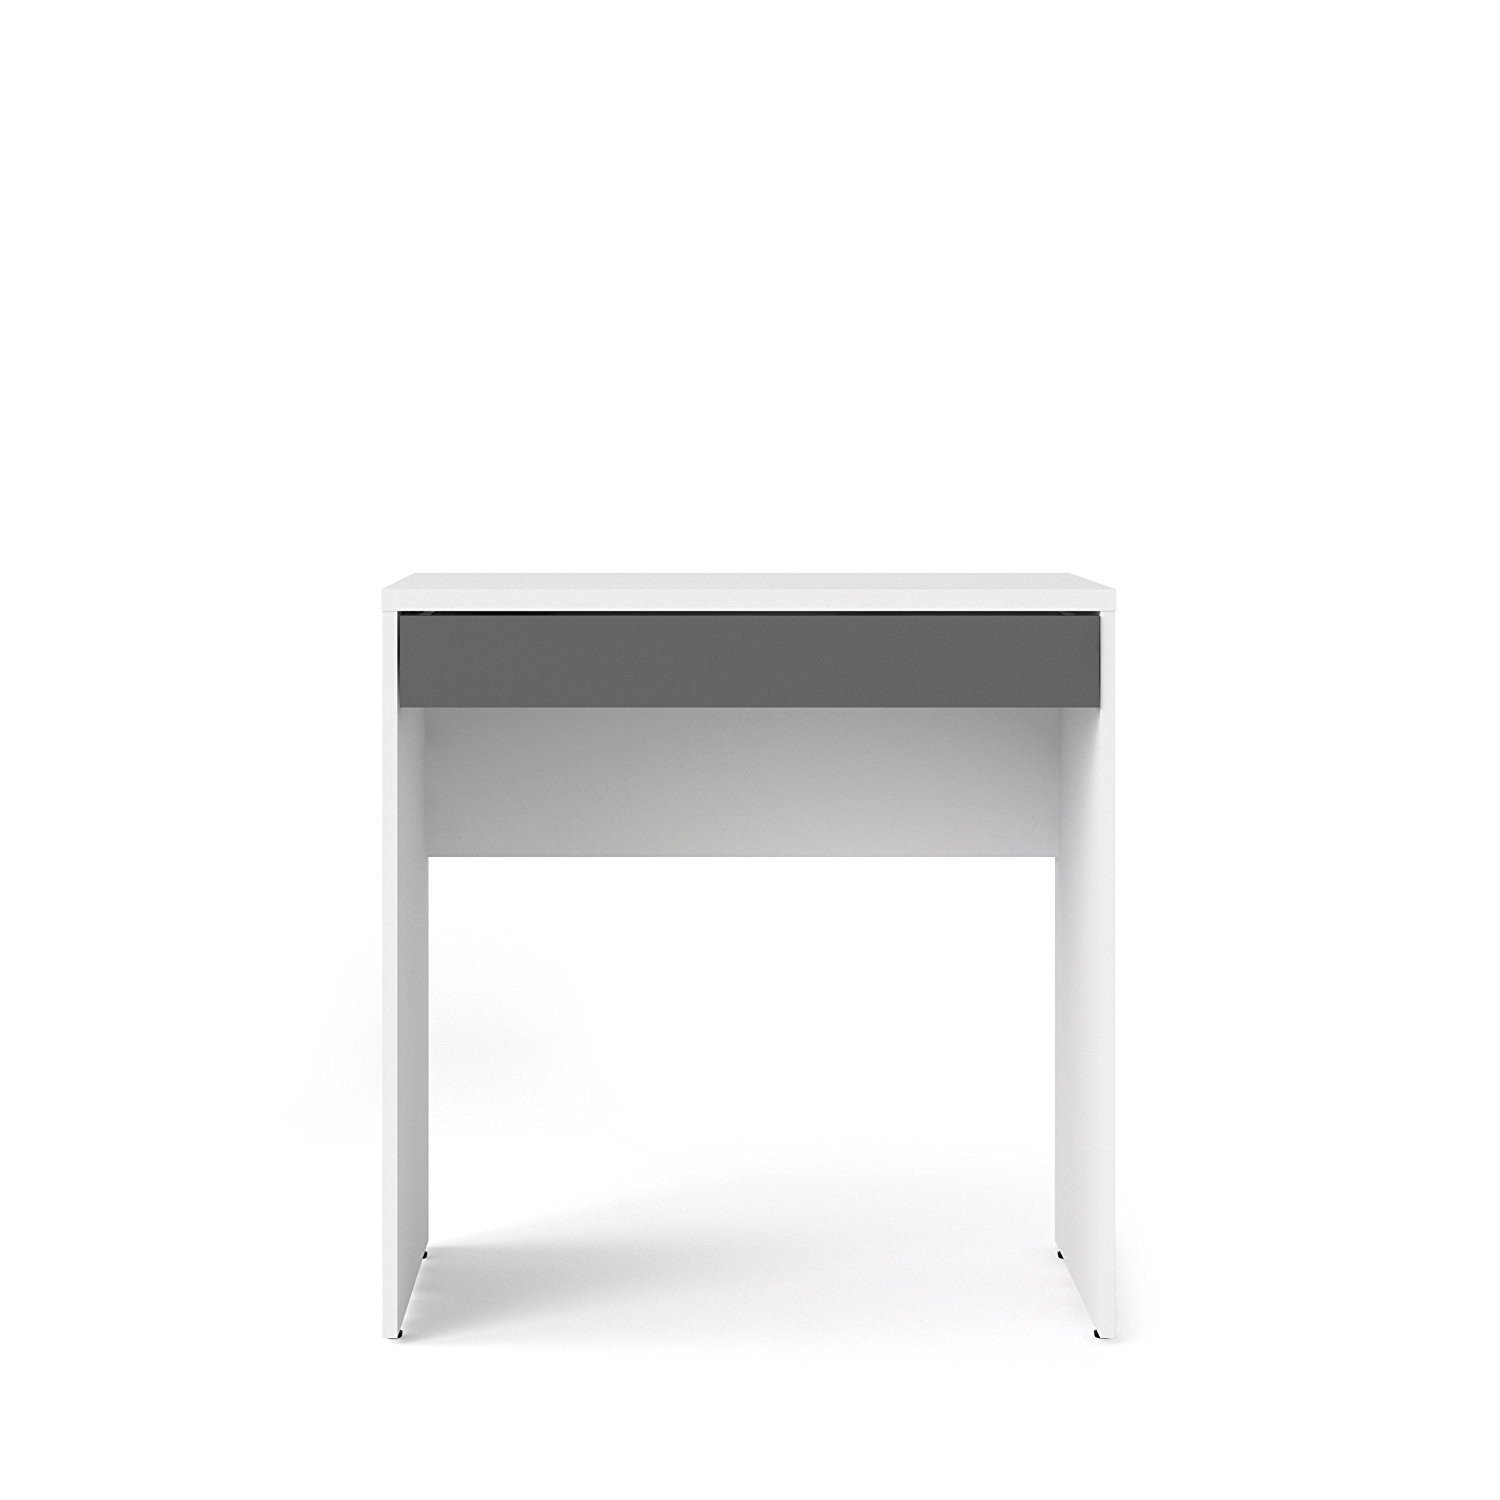 Indoor Multi-function Accent table Study Computer Home Office Desk Bedroom Living Room Modern Style End Table Sofa Side Table Coffee Table Drawer Desk